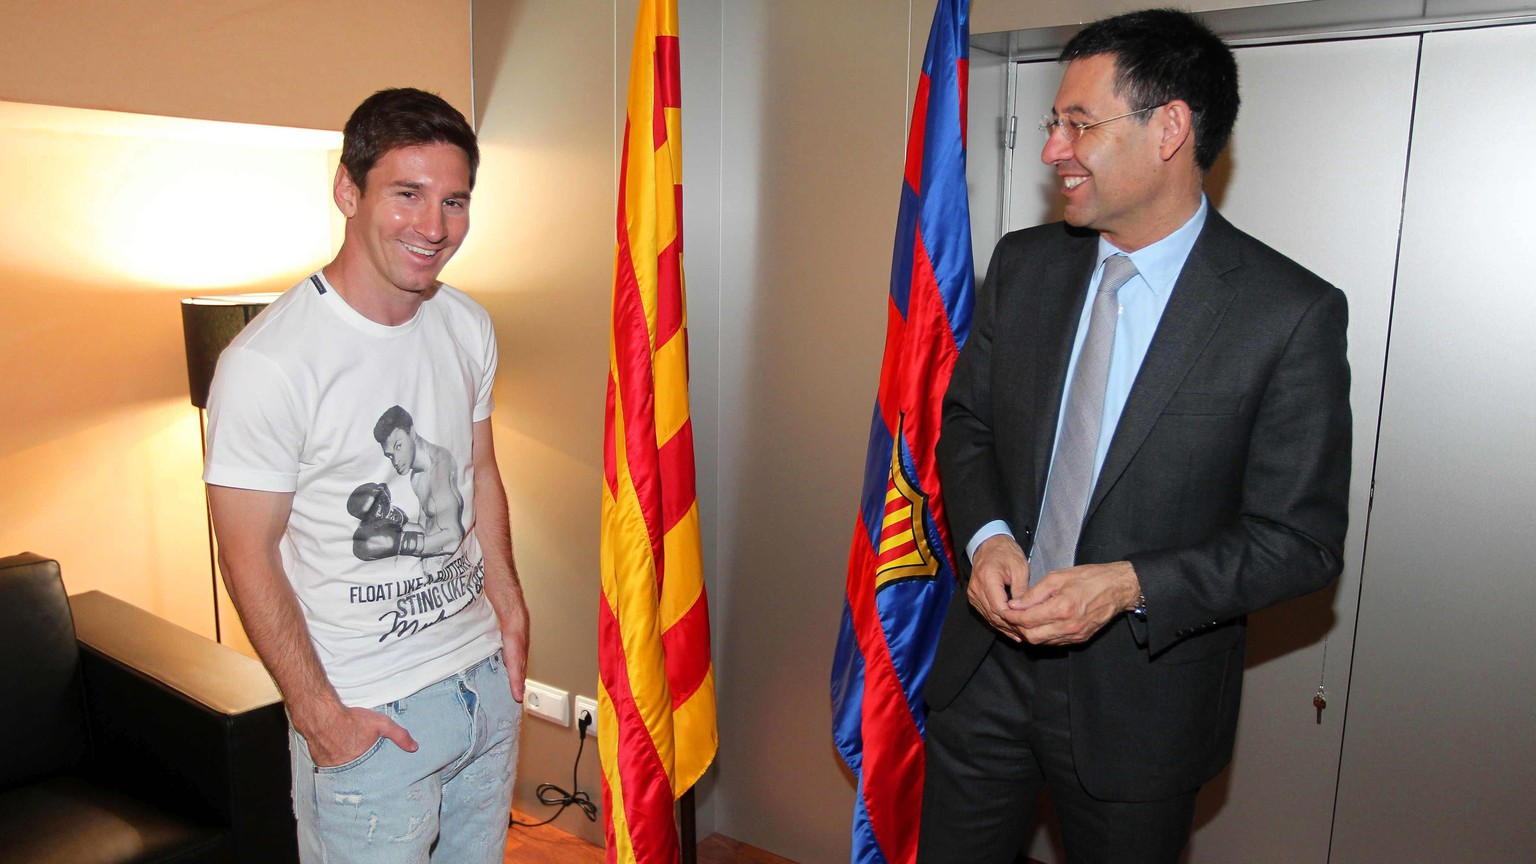 epa04214579 A handout picture released by FC Barcelona shows Argentinian striker Lionel Messi (L) standing next to FC Barcelona's President Josep Maria Bartomeu (R) after extending his contract in Barcelona, northeastern Spain, 19 May 2014.  EPA/MIGUEL RUIZ  HANDOUT EDITORIAL USE ONLY/NO SALES